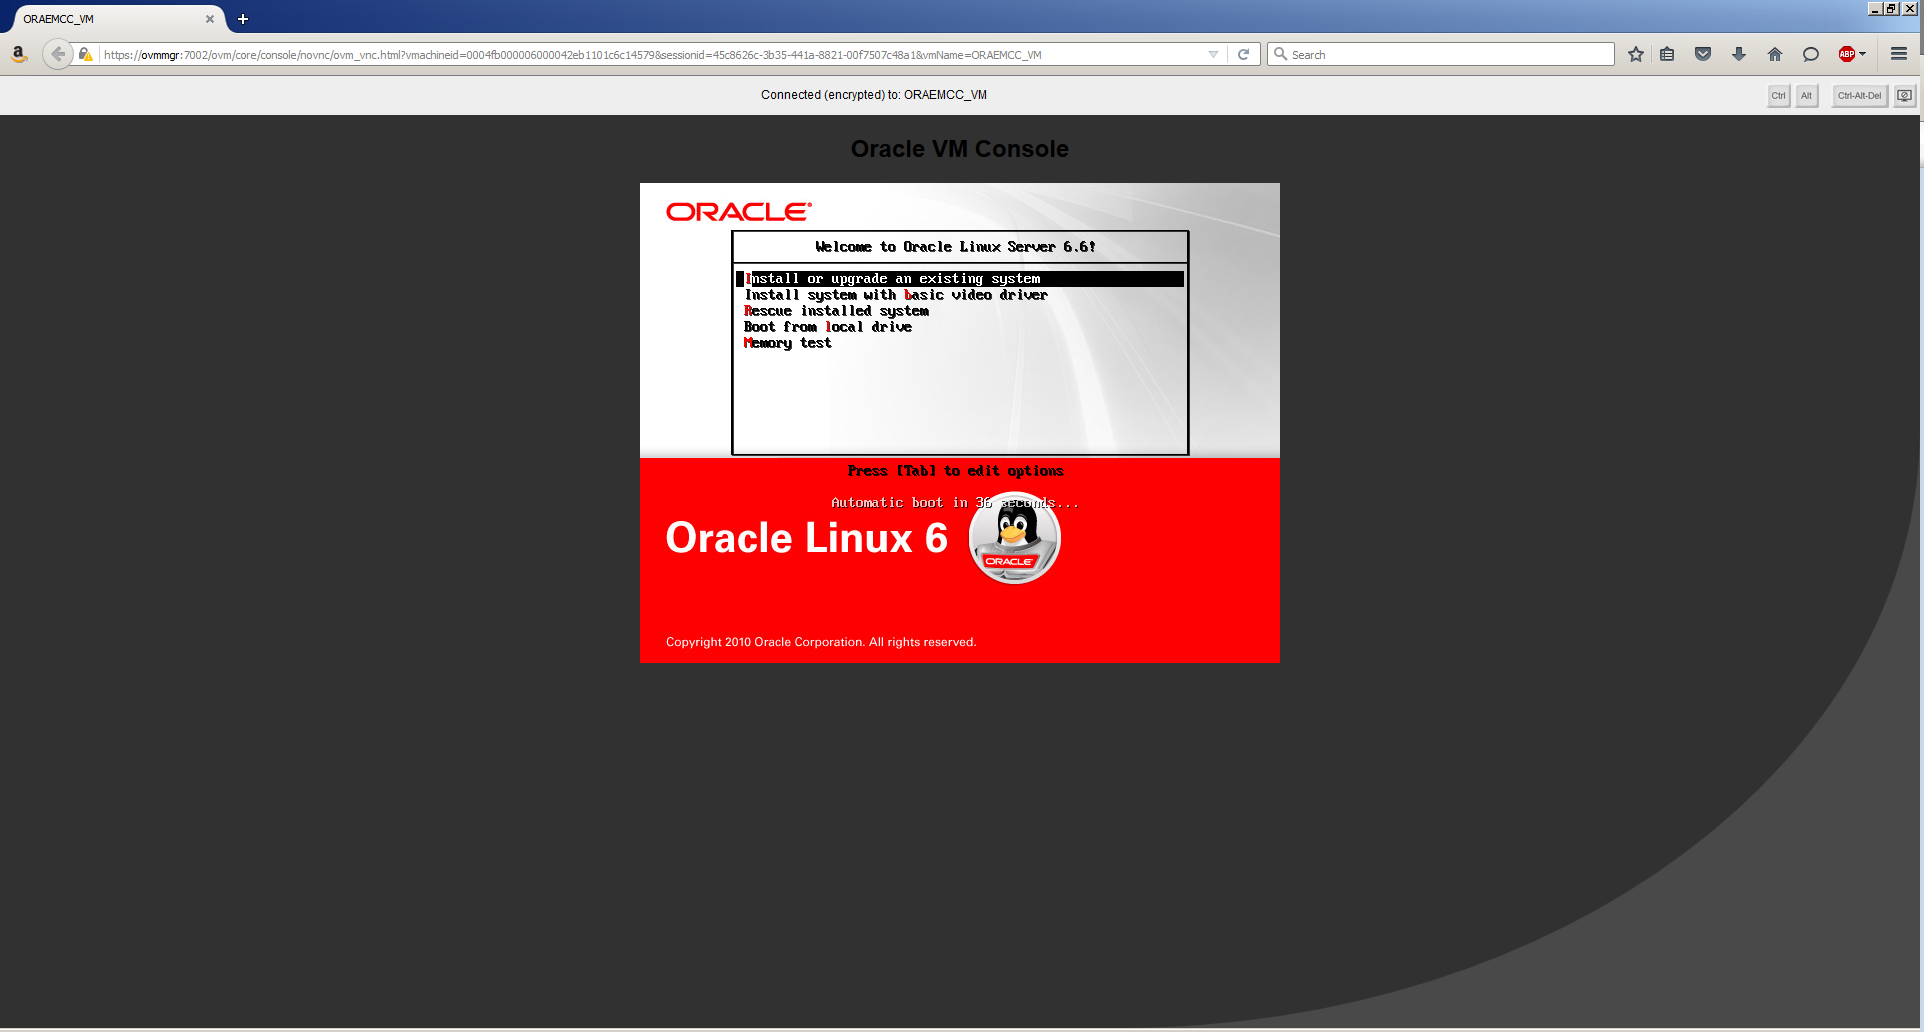 Build Your Own Oracle Infrastructure: Part 6 – Build OEM